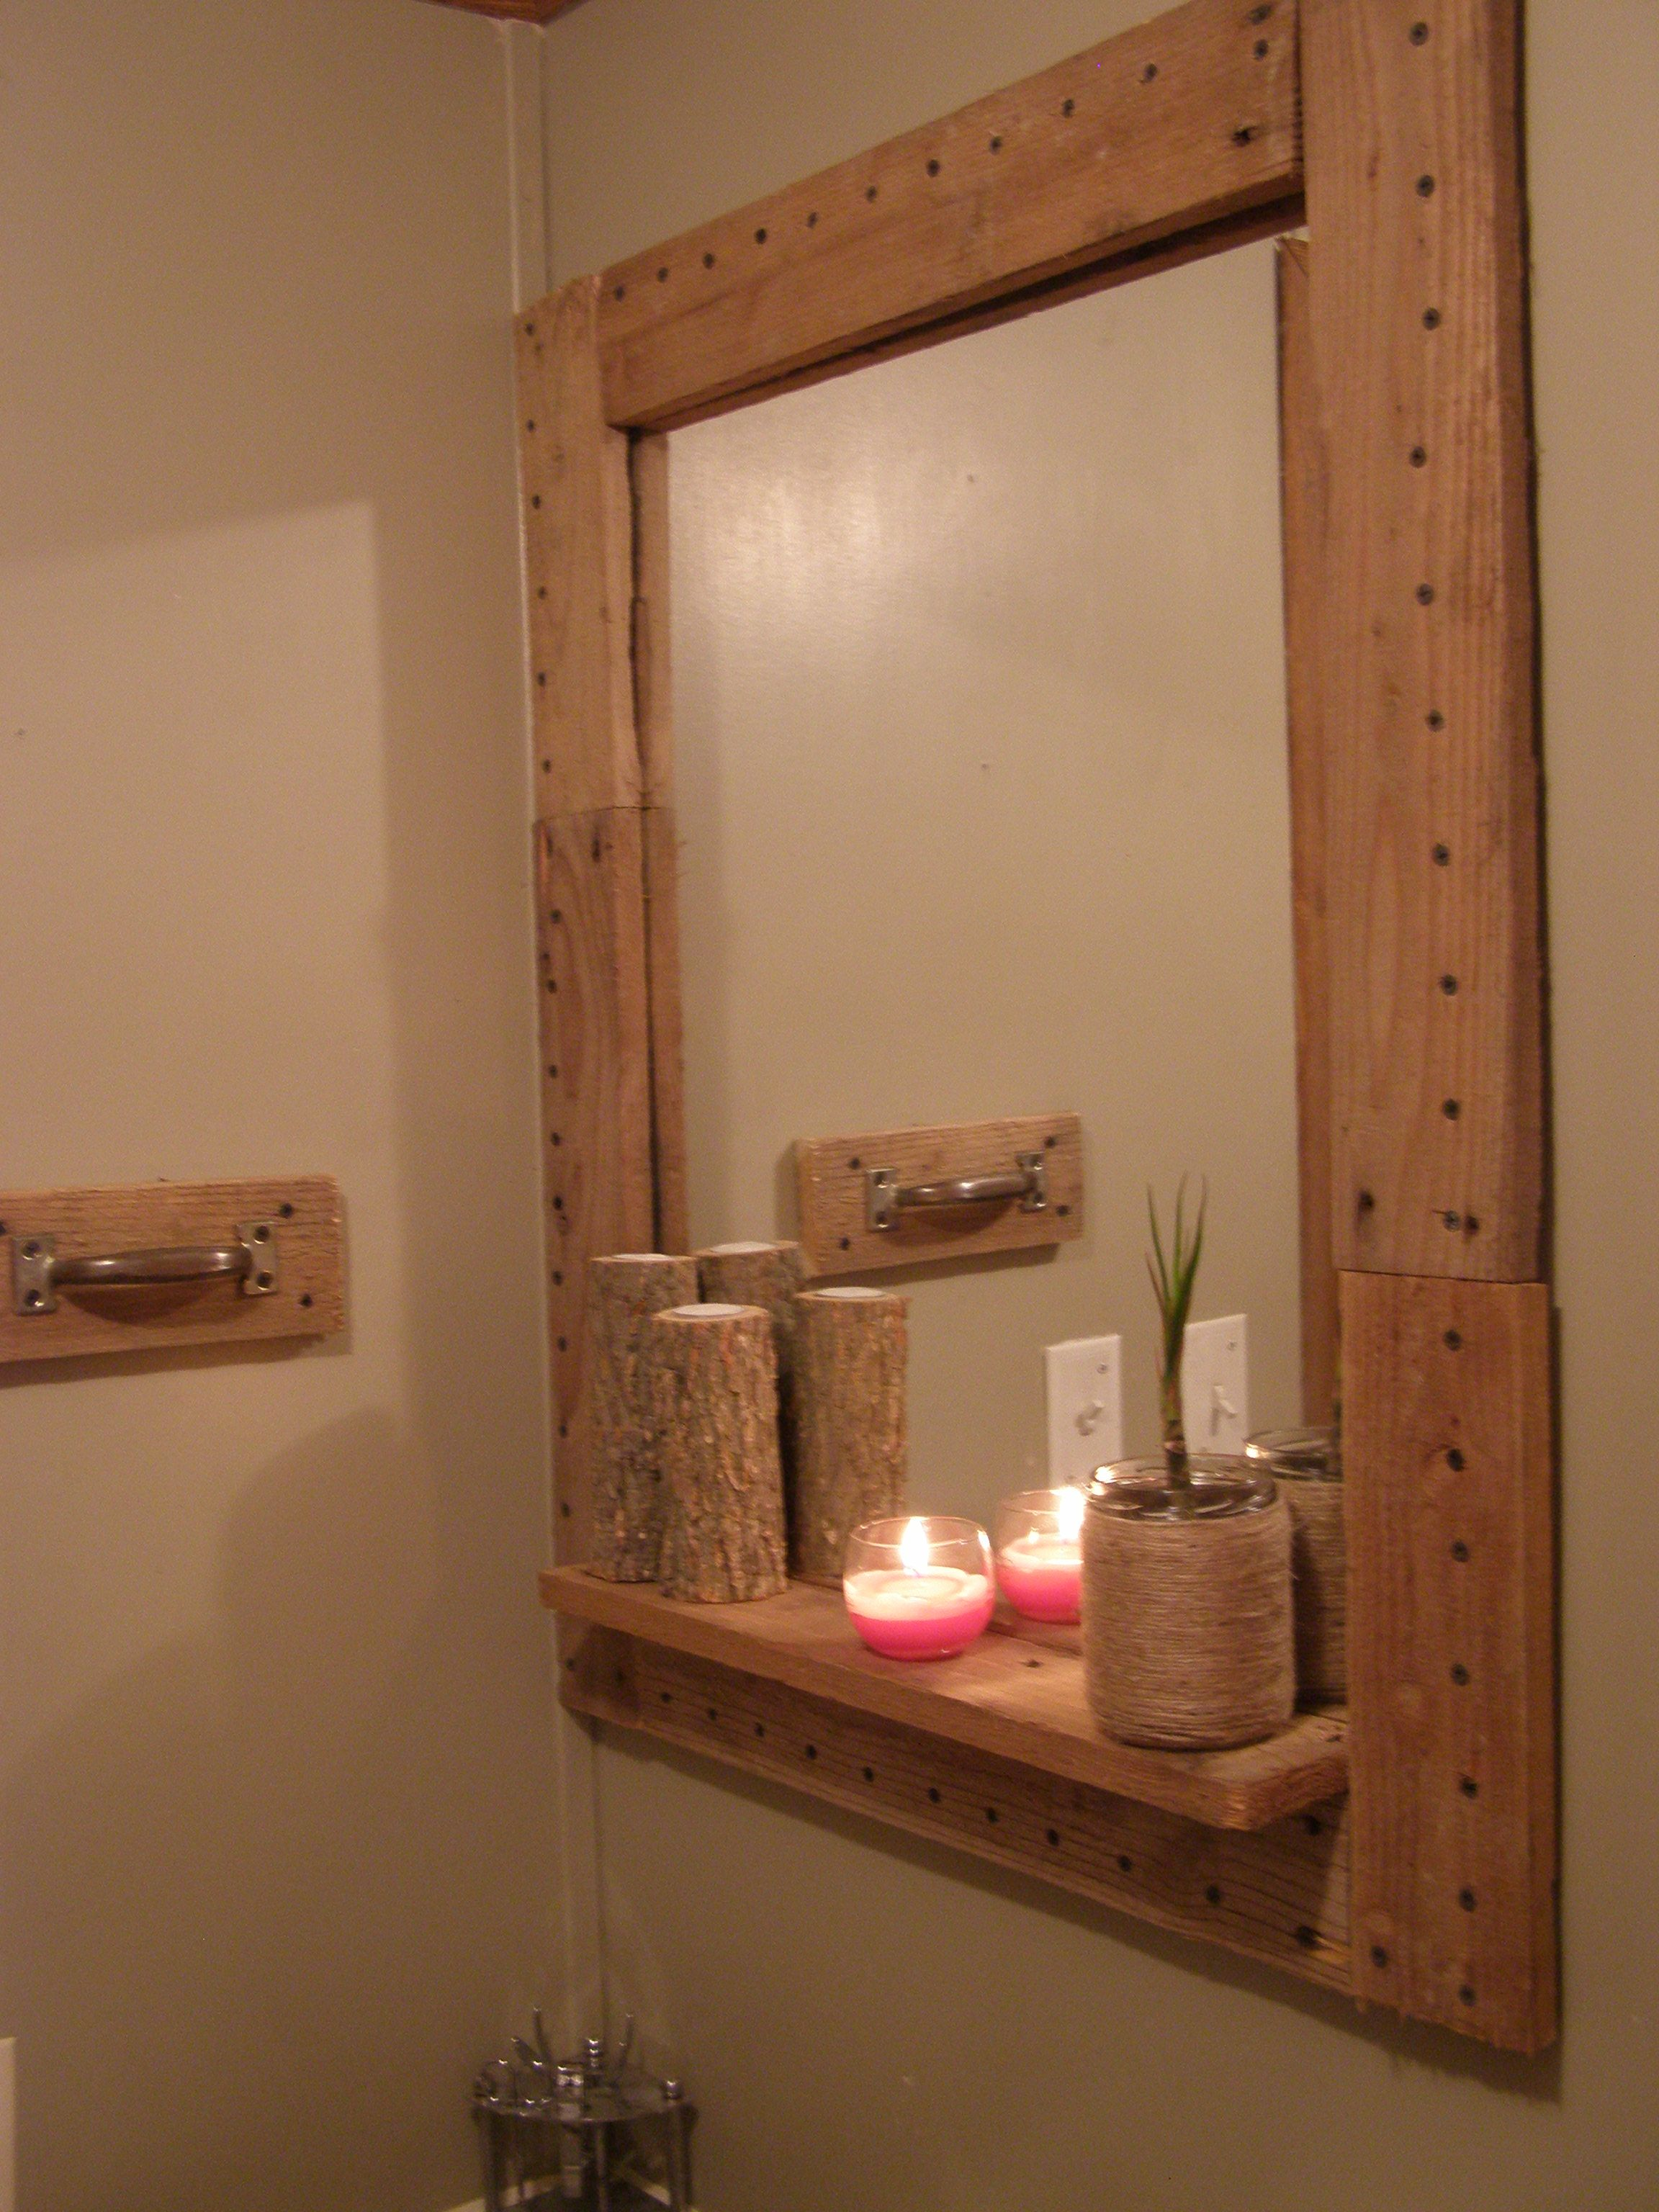 Framed My Bathroom Mirror With Pallets The Towel Hanger